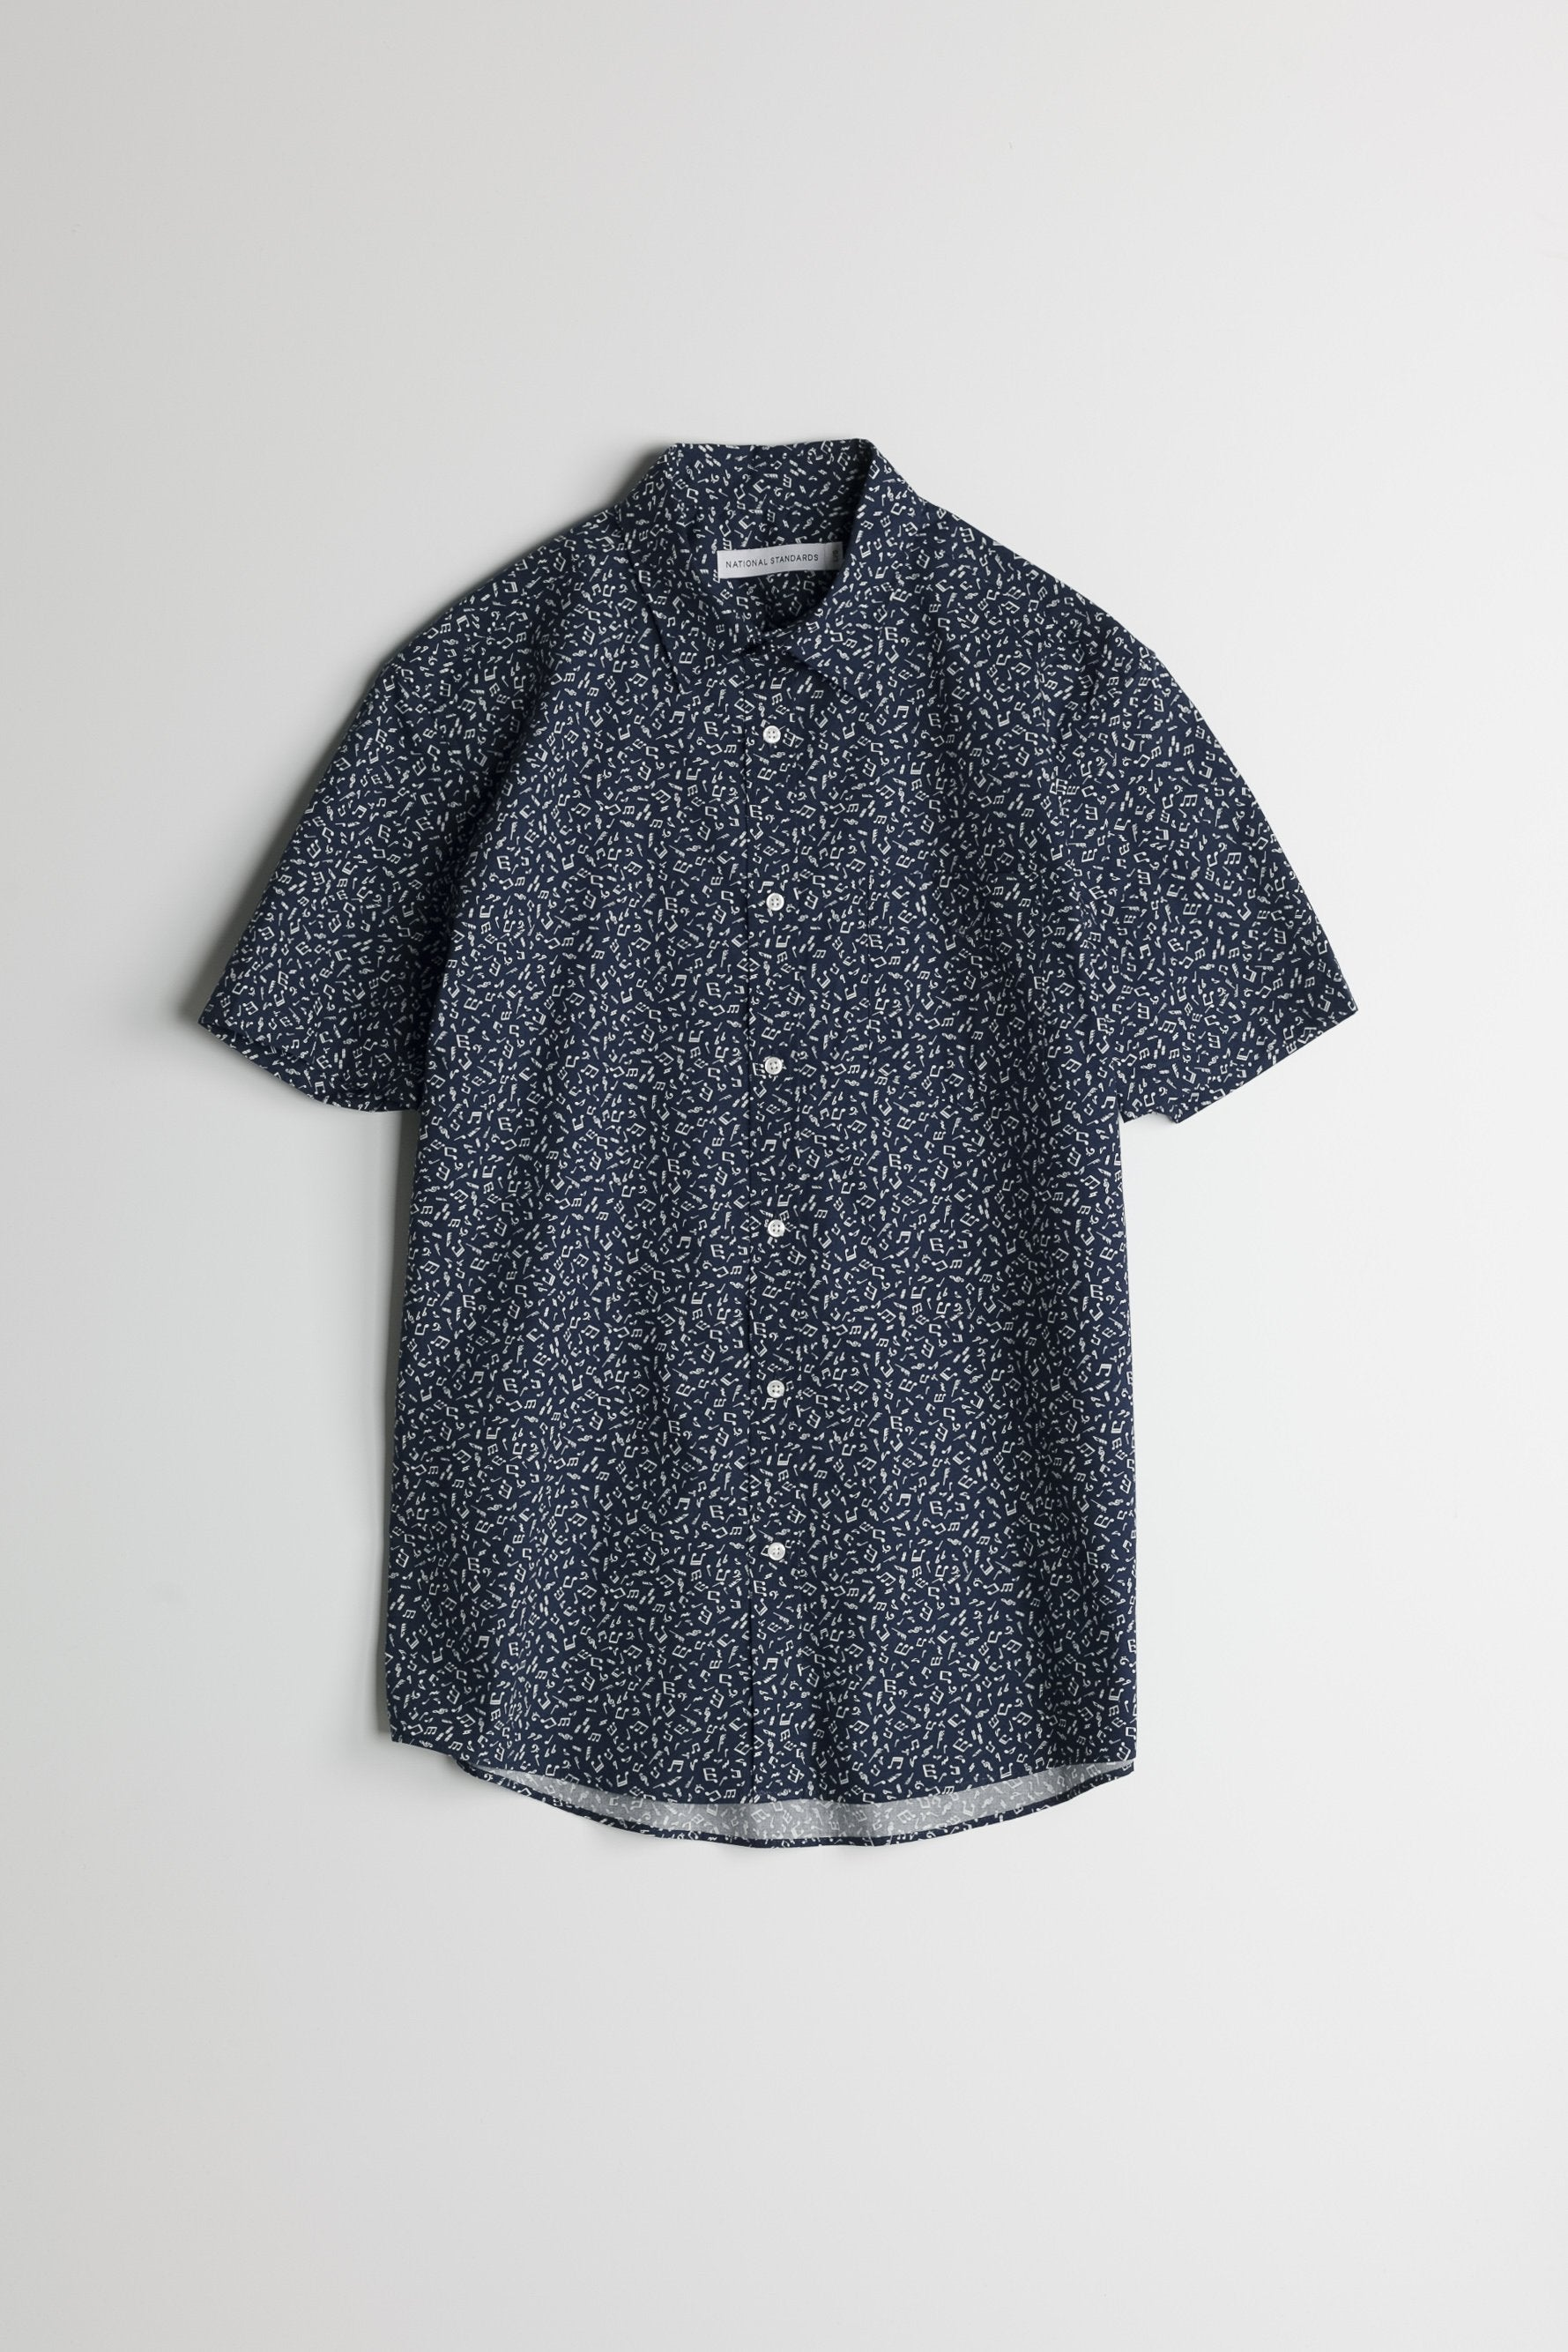 japanese-musician-print-in-navy 01